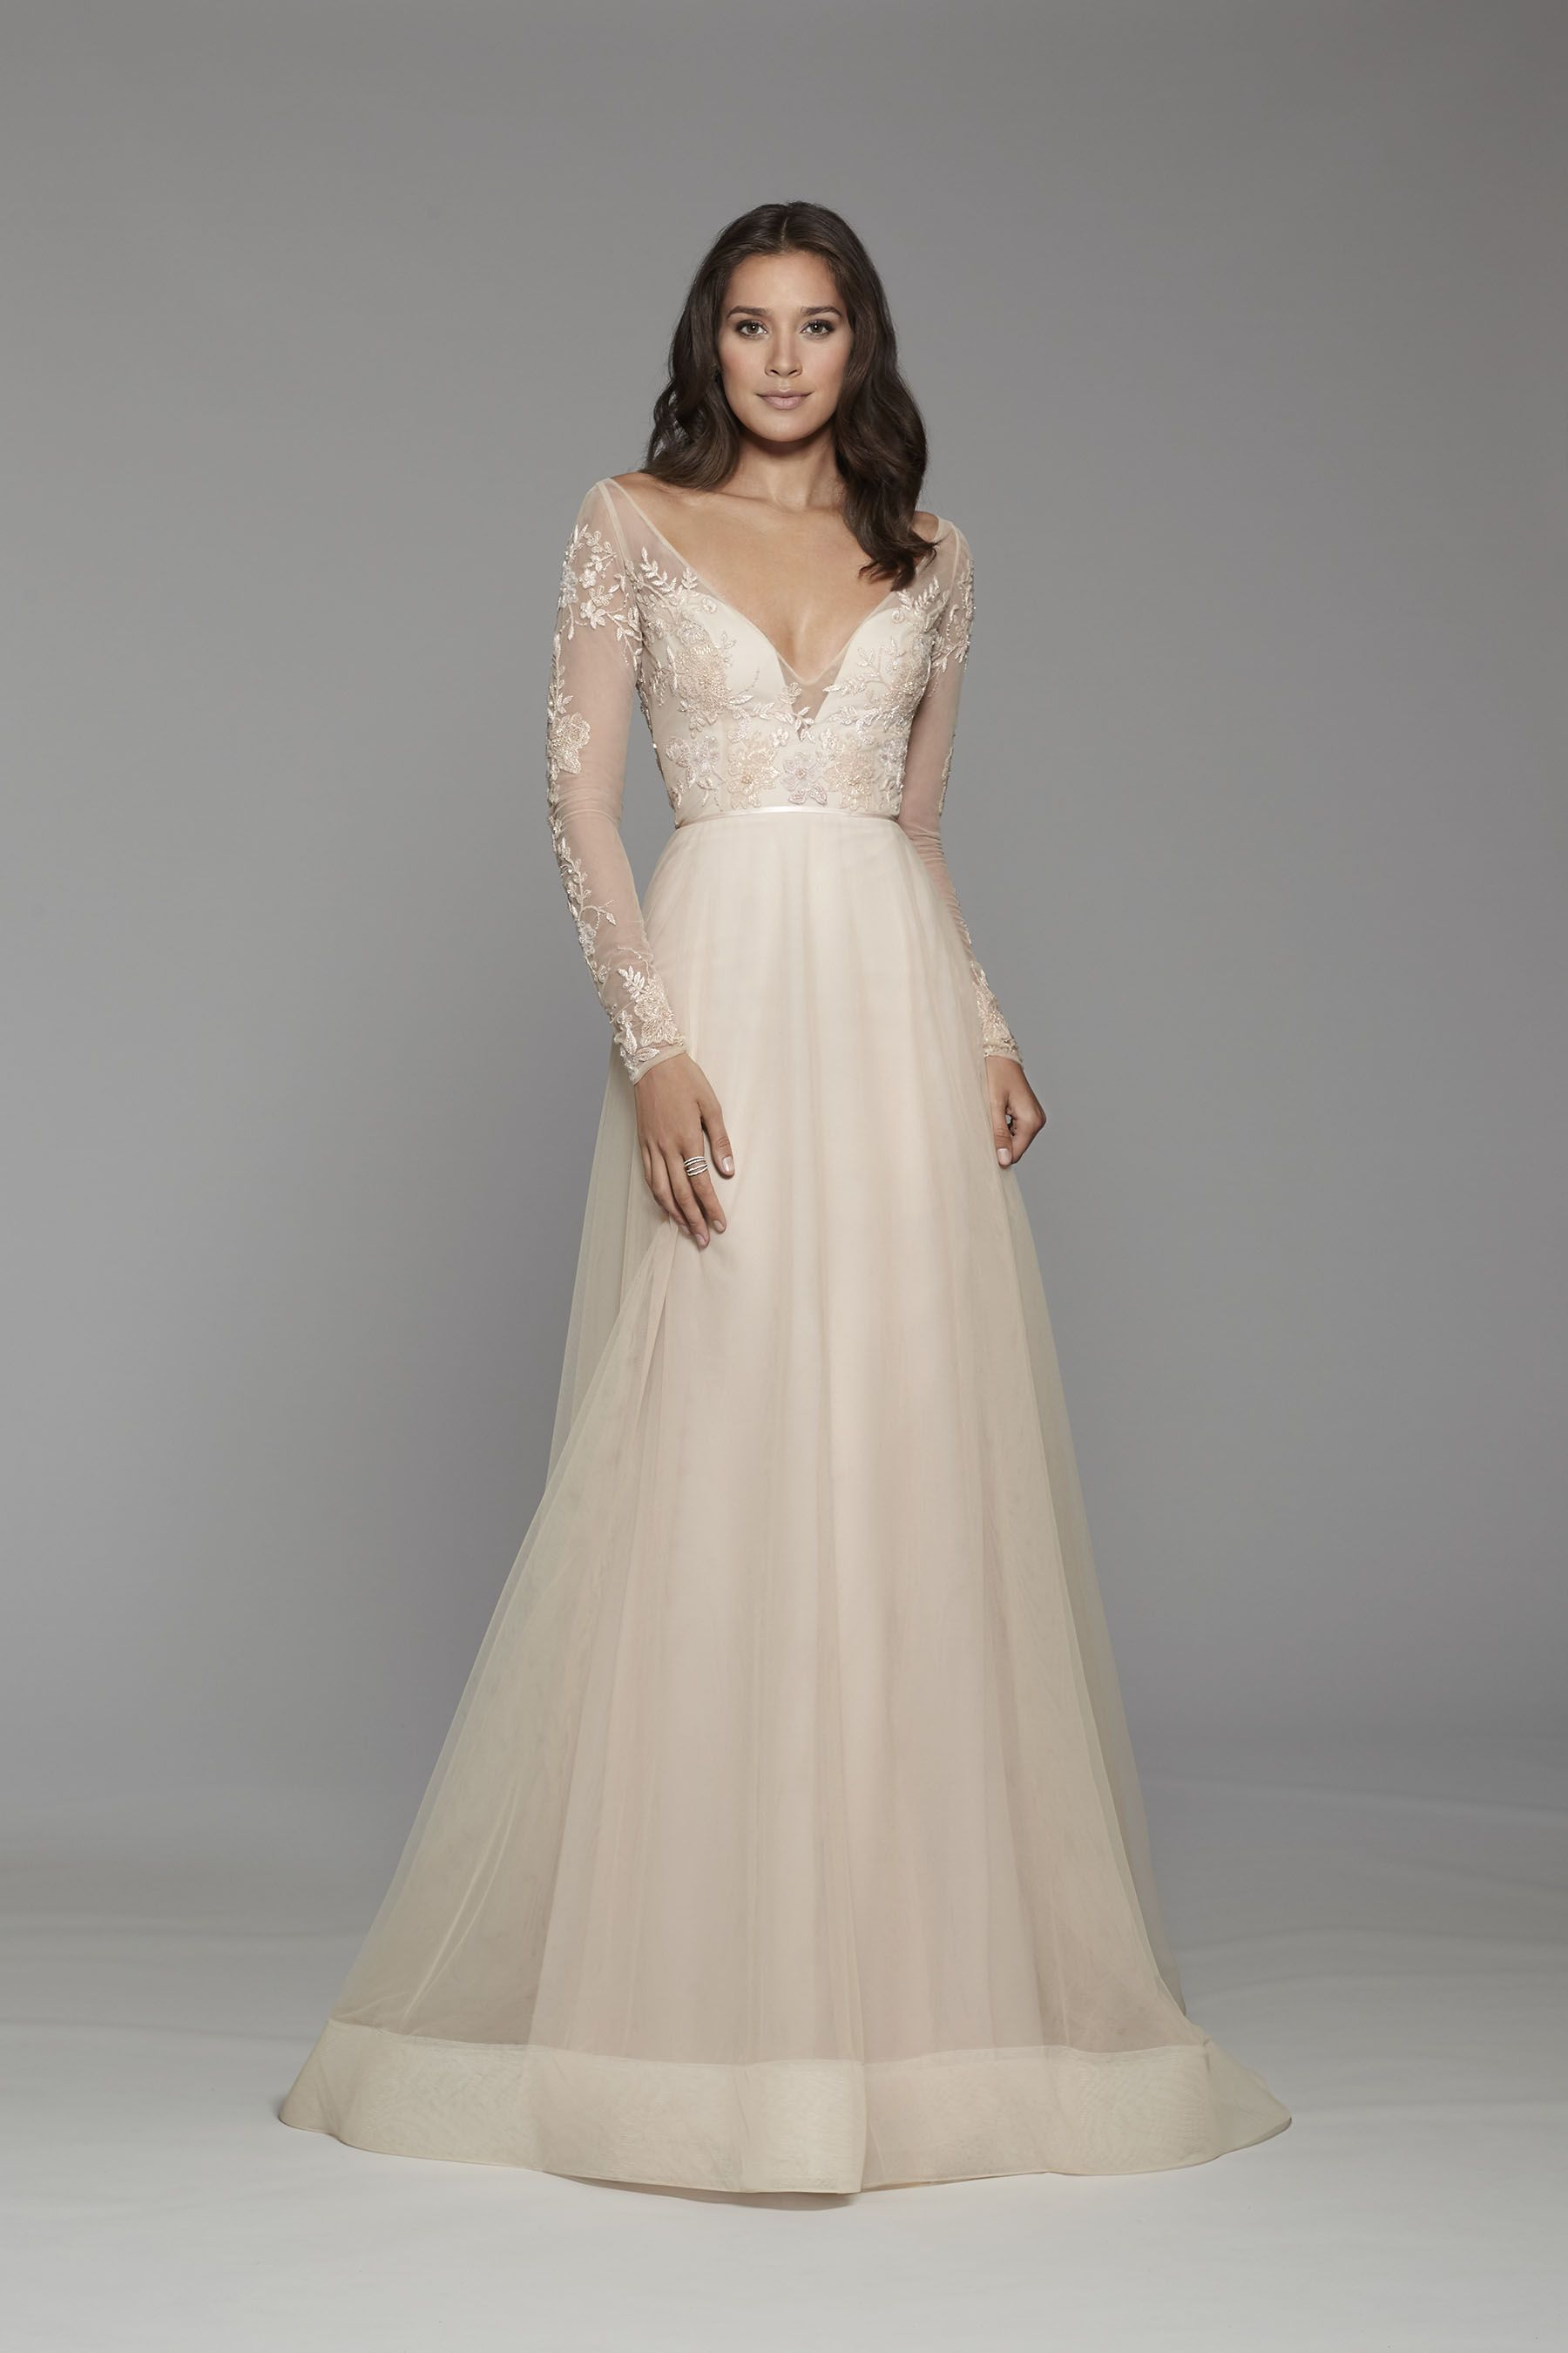 Tara Keely Bridal Style 2752 in Blush - Blush tulle Aline gown ...